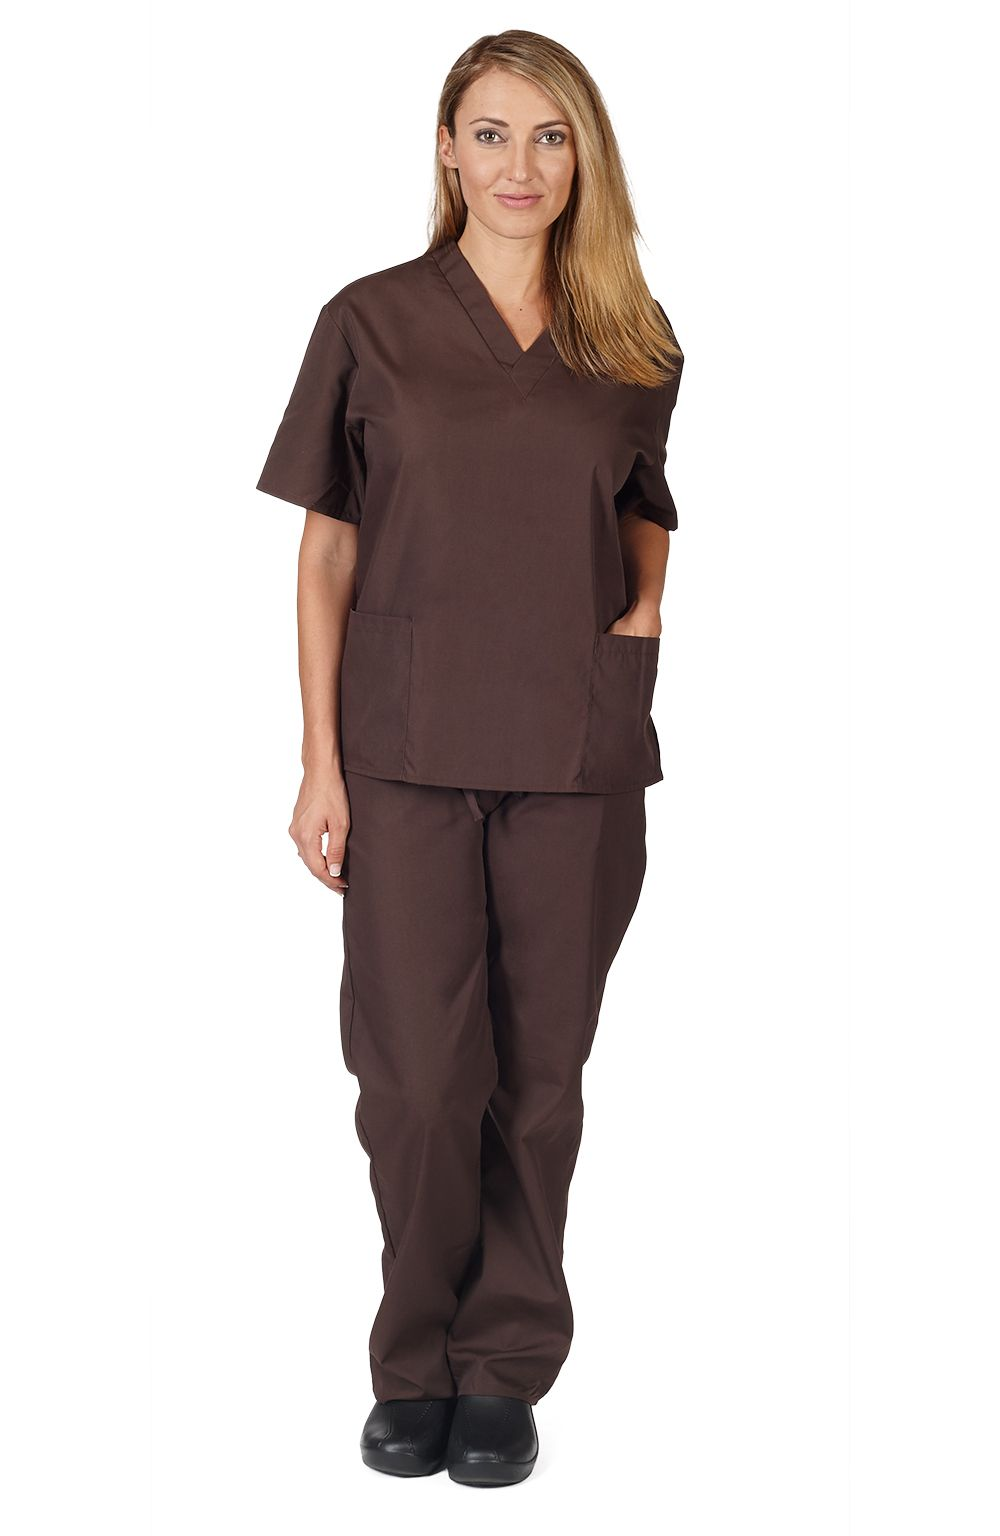 1472cfef46f Wholesale Scrub Box of 10 Scrub Sets, Buy 10 Sets and Save, Wholesale Cheap  Scrubs visit us here www.smileyscrubs.com